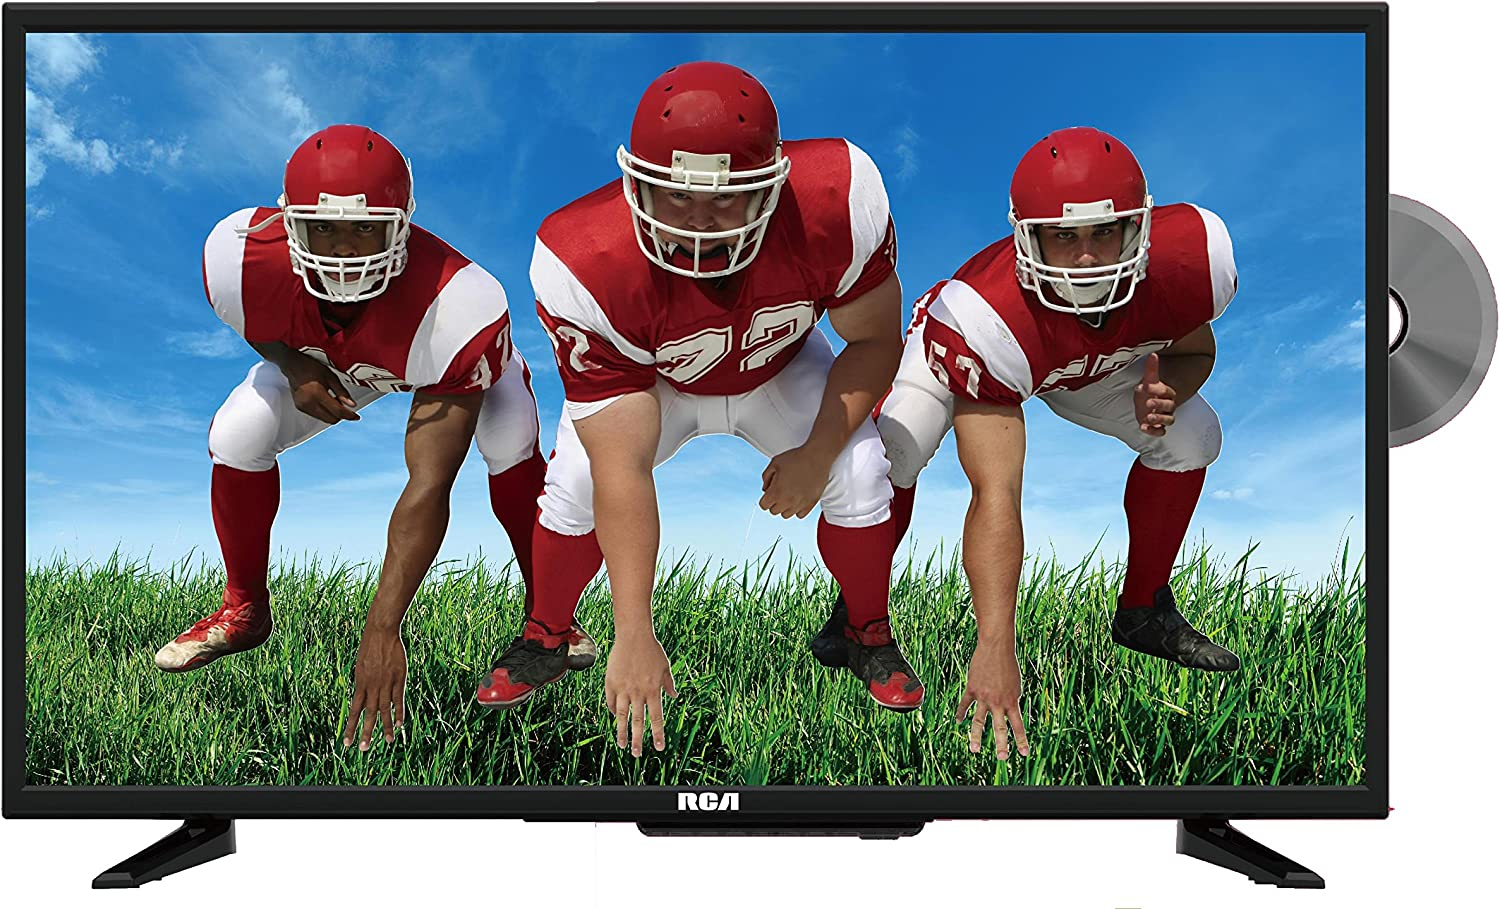 Roman 9.5 inches Bluetooth TV with Music and Led Rotate Sledders with Adapter